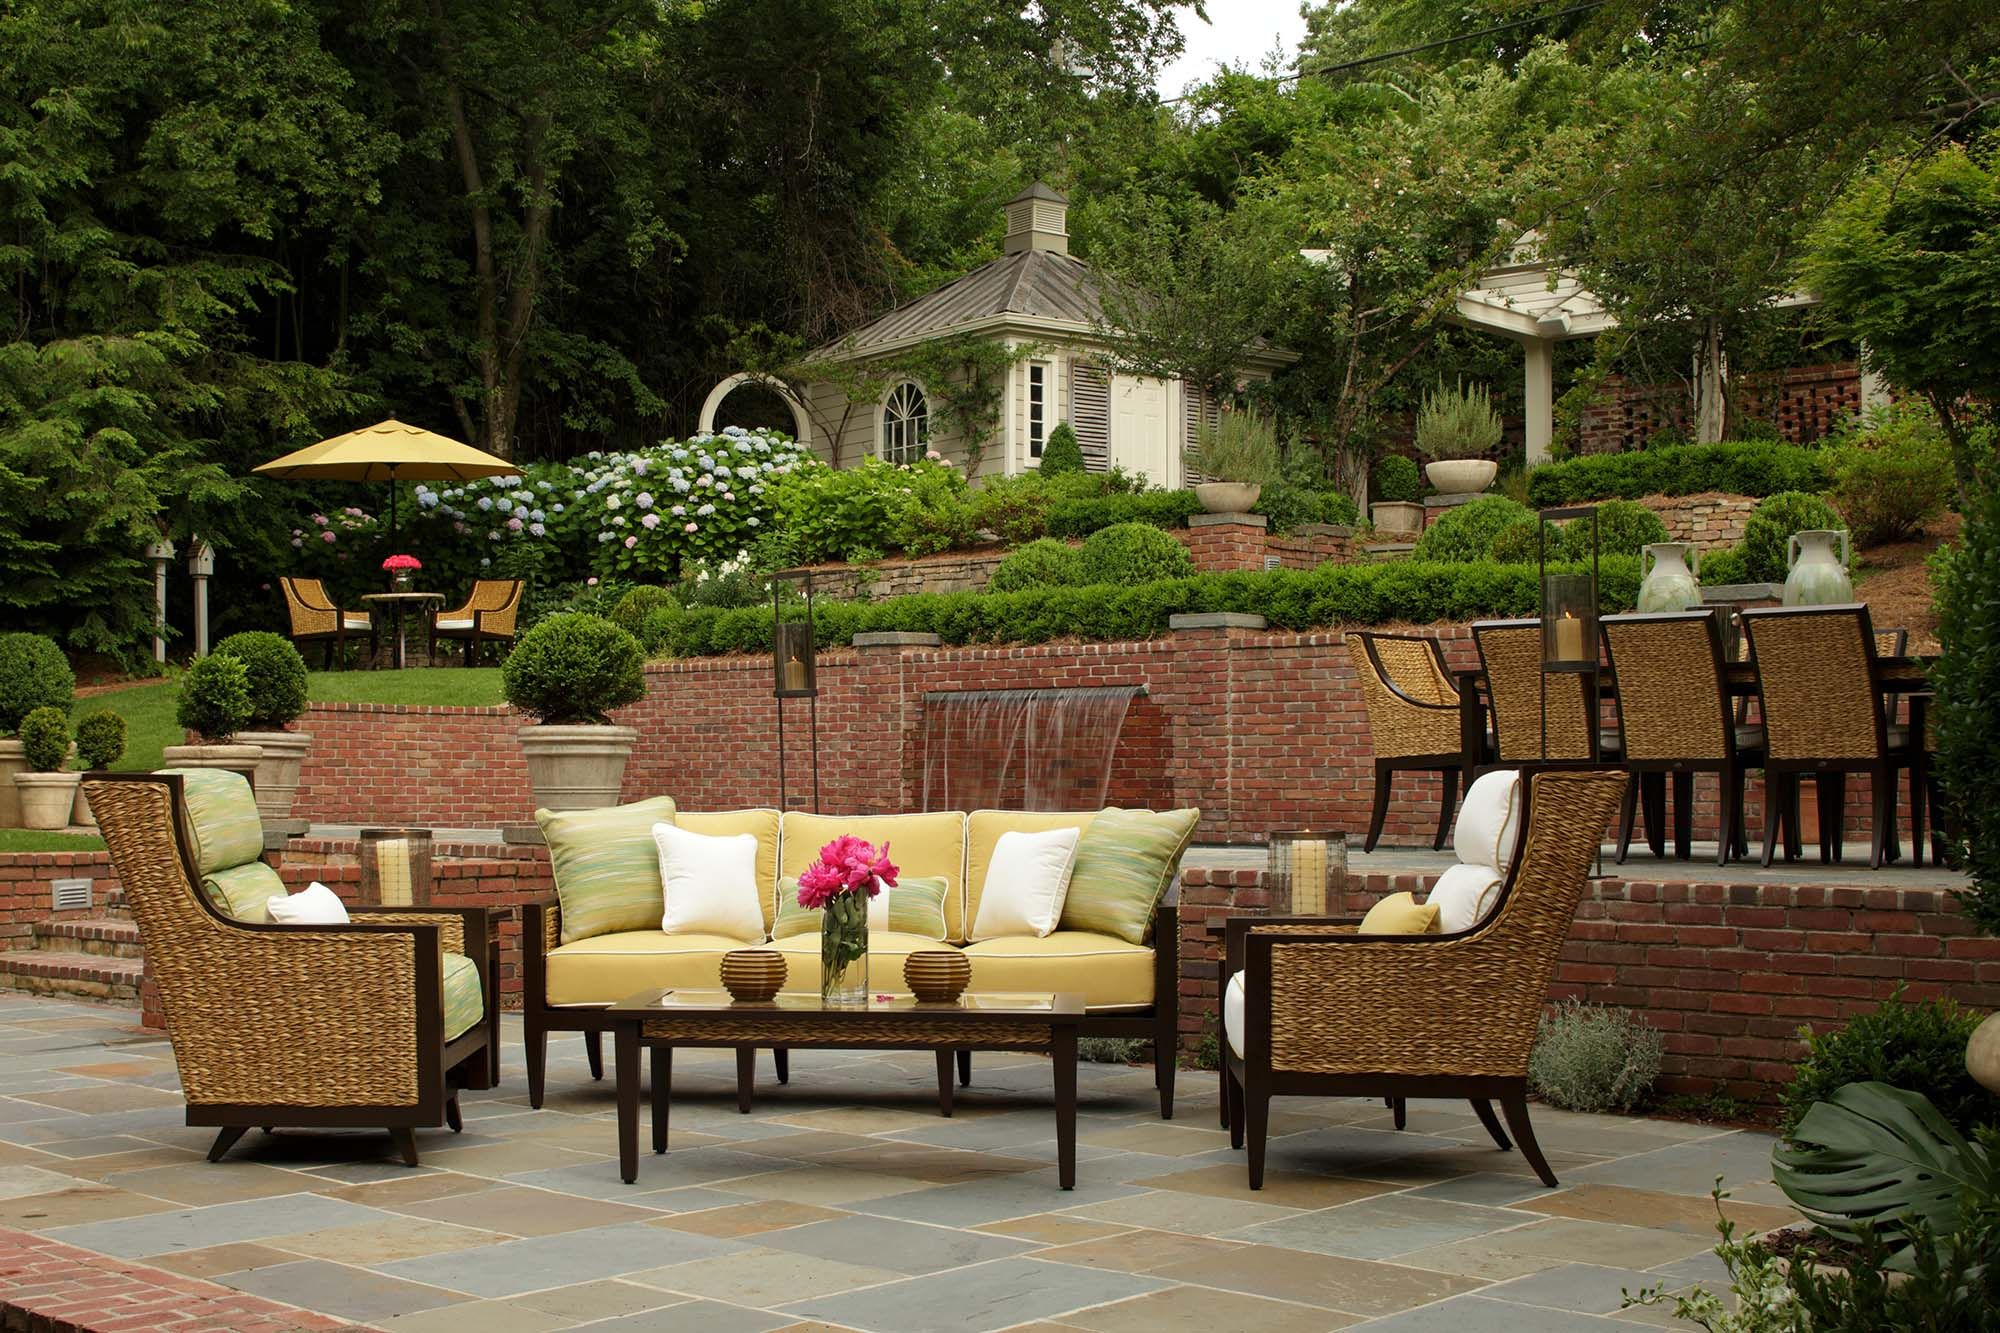 Patio furniture set made of resin wicker and wrought aluminum